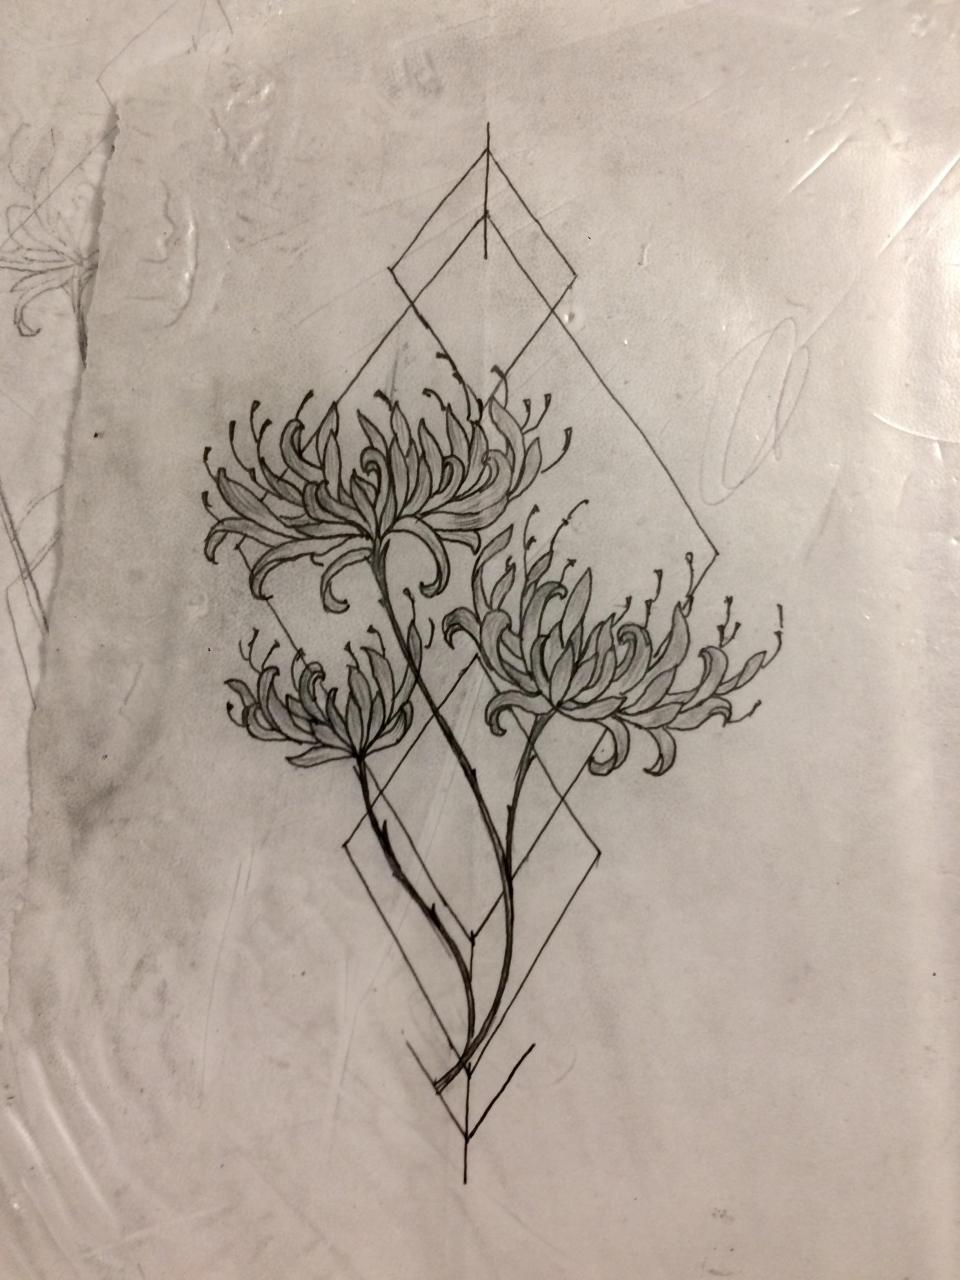 I need help with this tattoo, more in comments